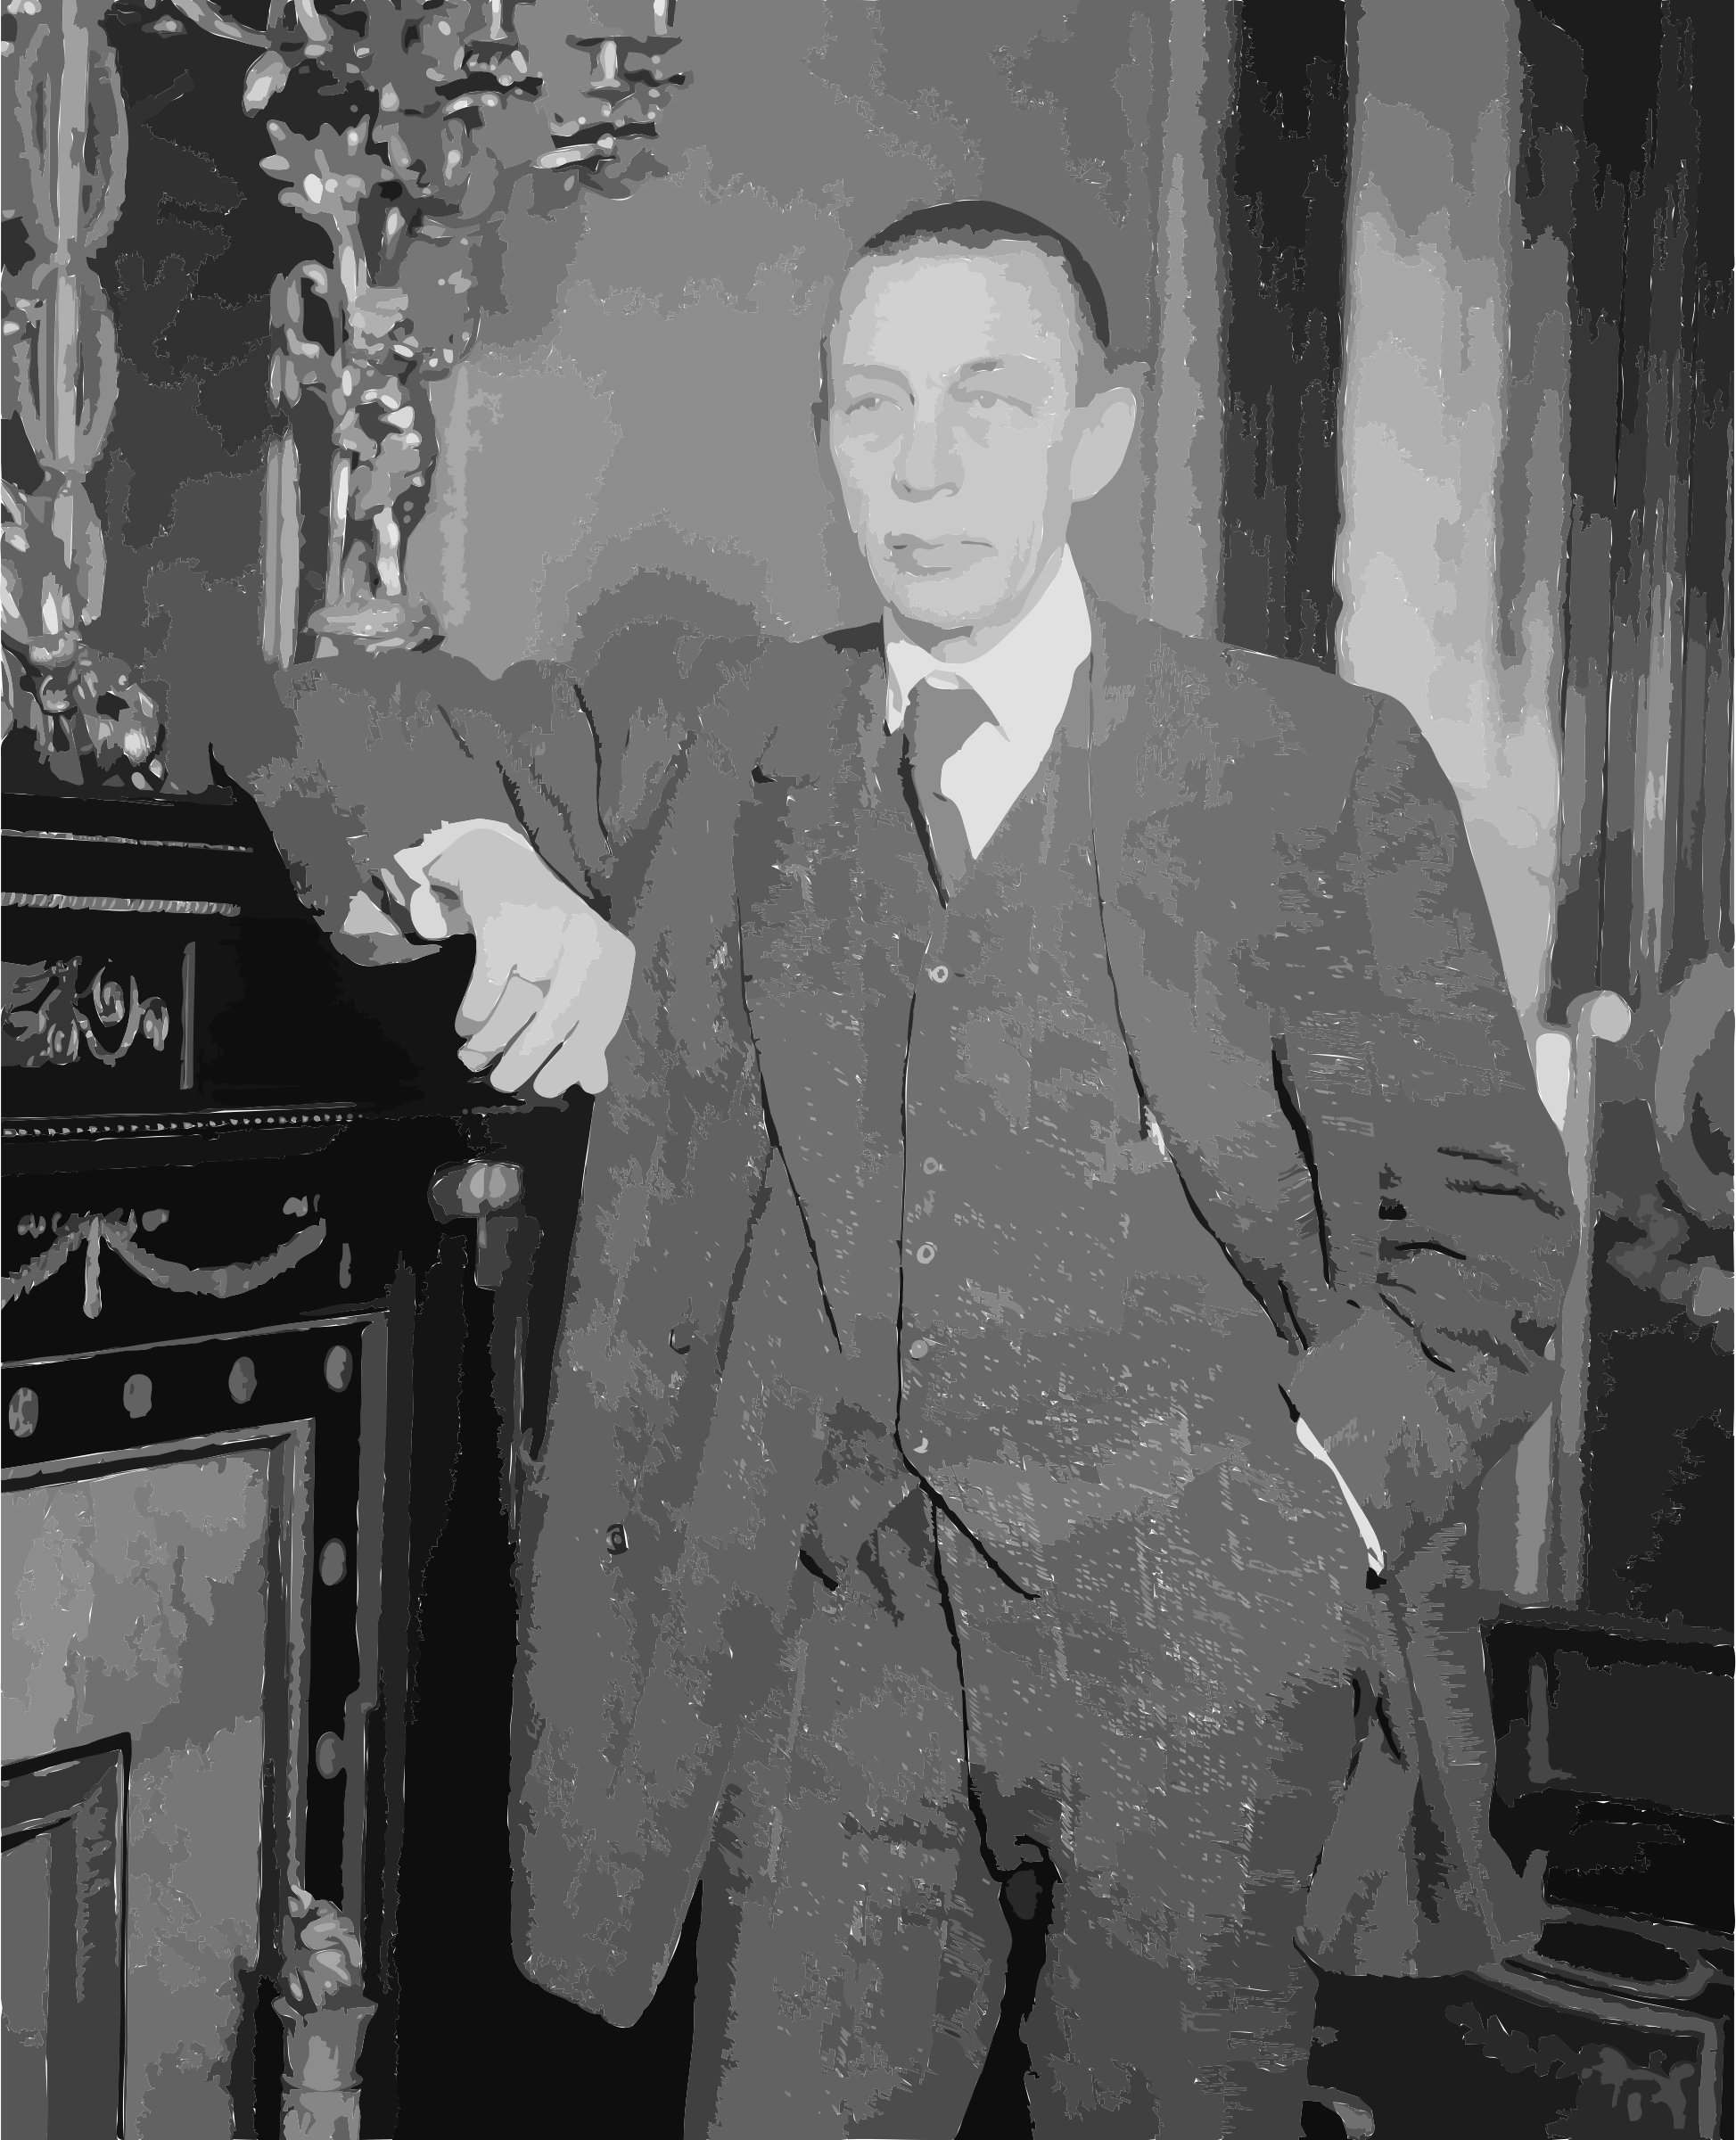 Sergei Rachmaninoff LOC 30160 cropped by 5nbz3a+45jqtl07aorc